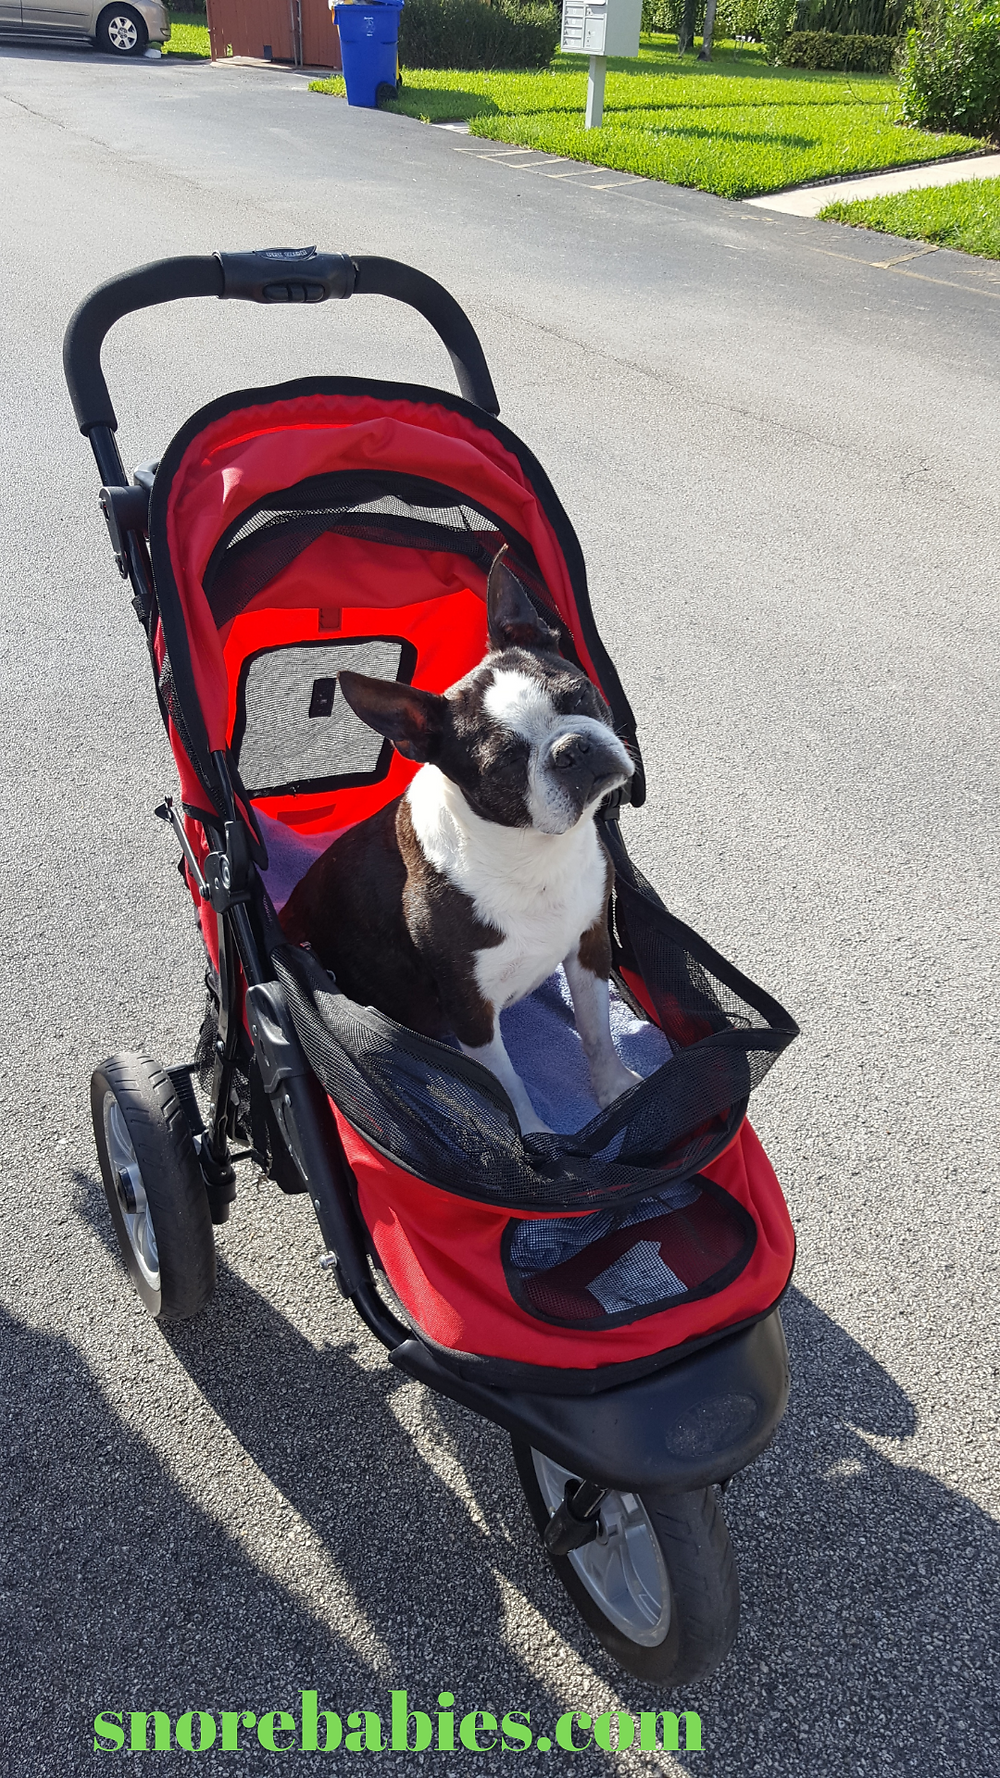 Senior Boston terrier in dog stroller